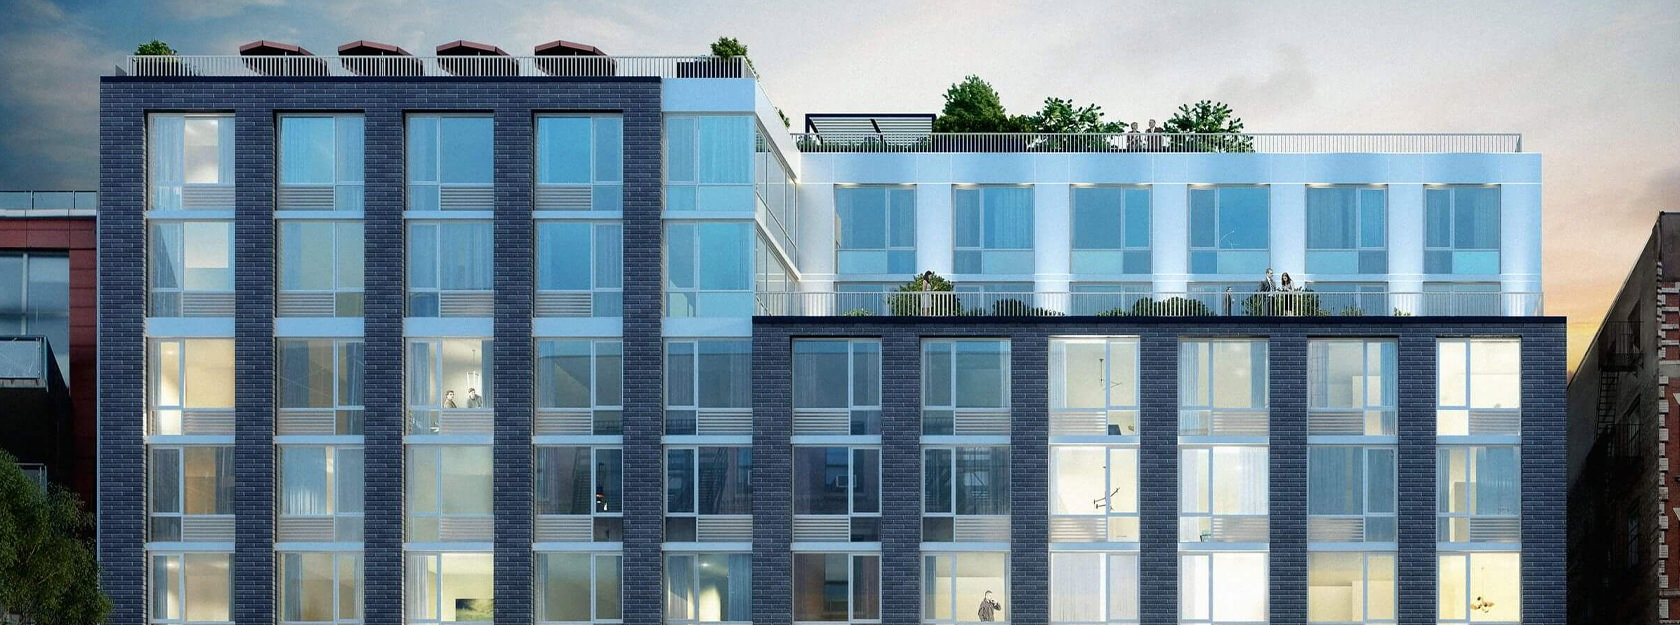 Eve East Village high-rise apartments with large windows